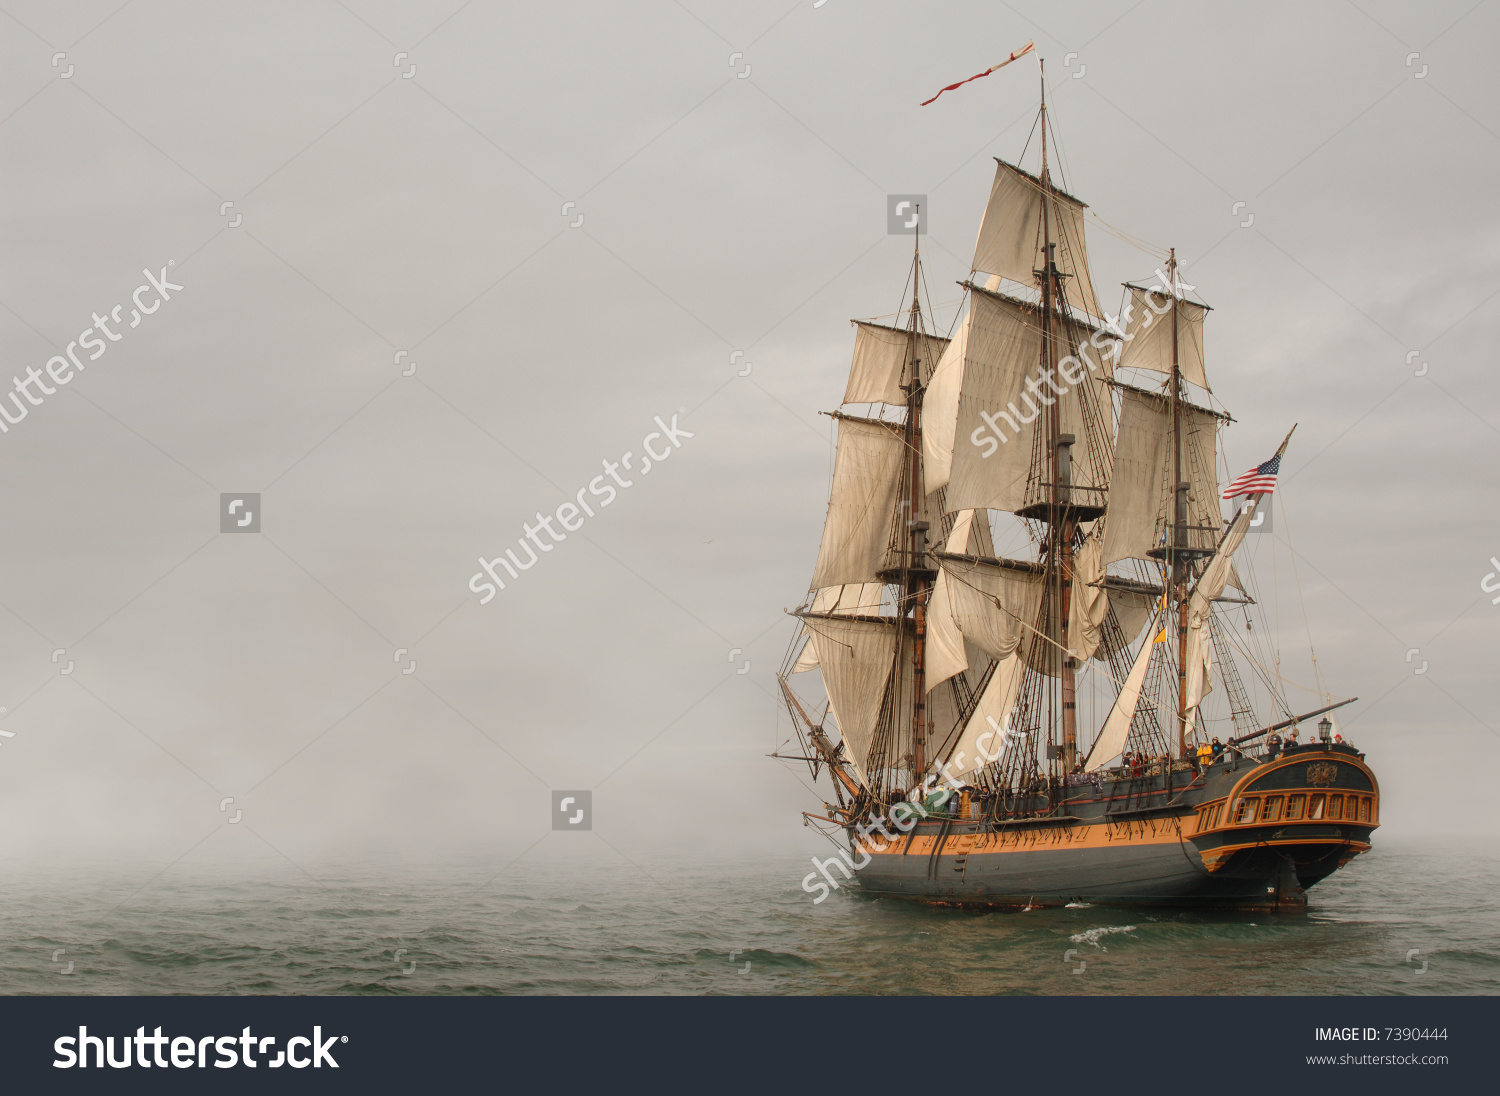 Vintage Frigate Sailing Into Fog Bank Stock Photo 7390444.